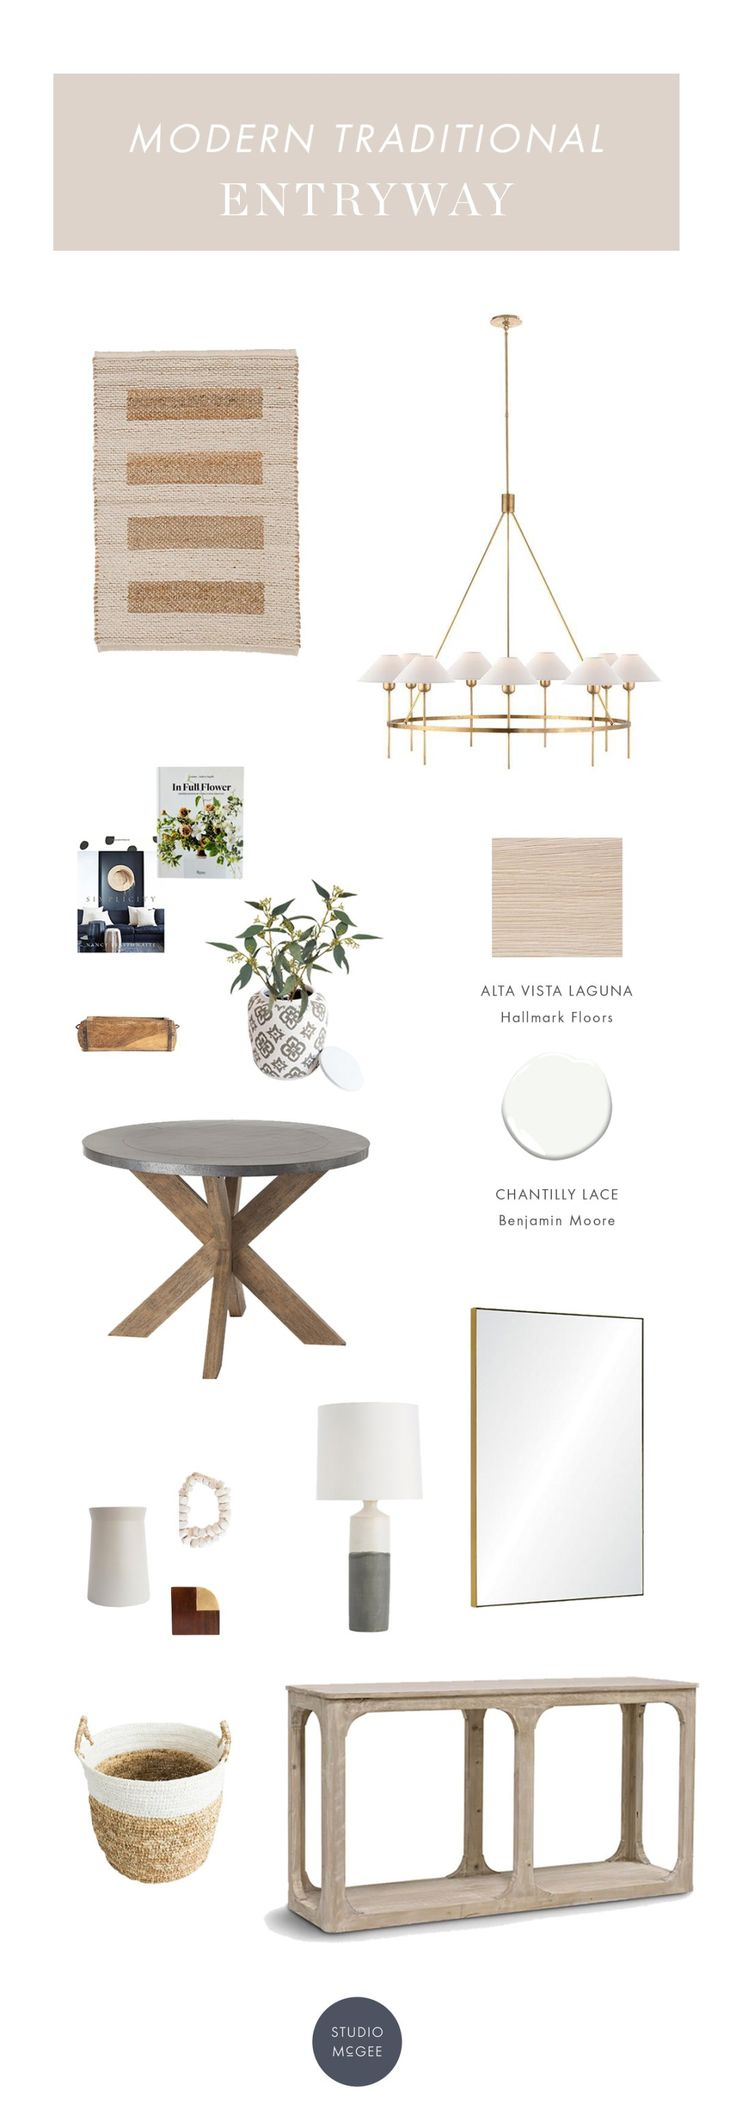 Get the look: a modern traditional entryway   Riverbottoms Entryway Webisode